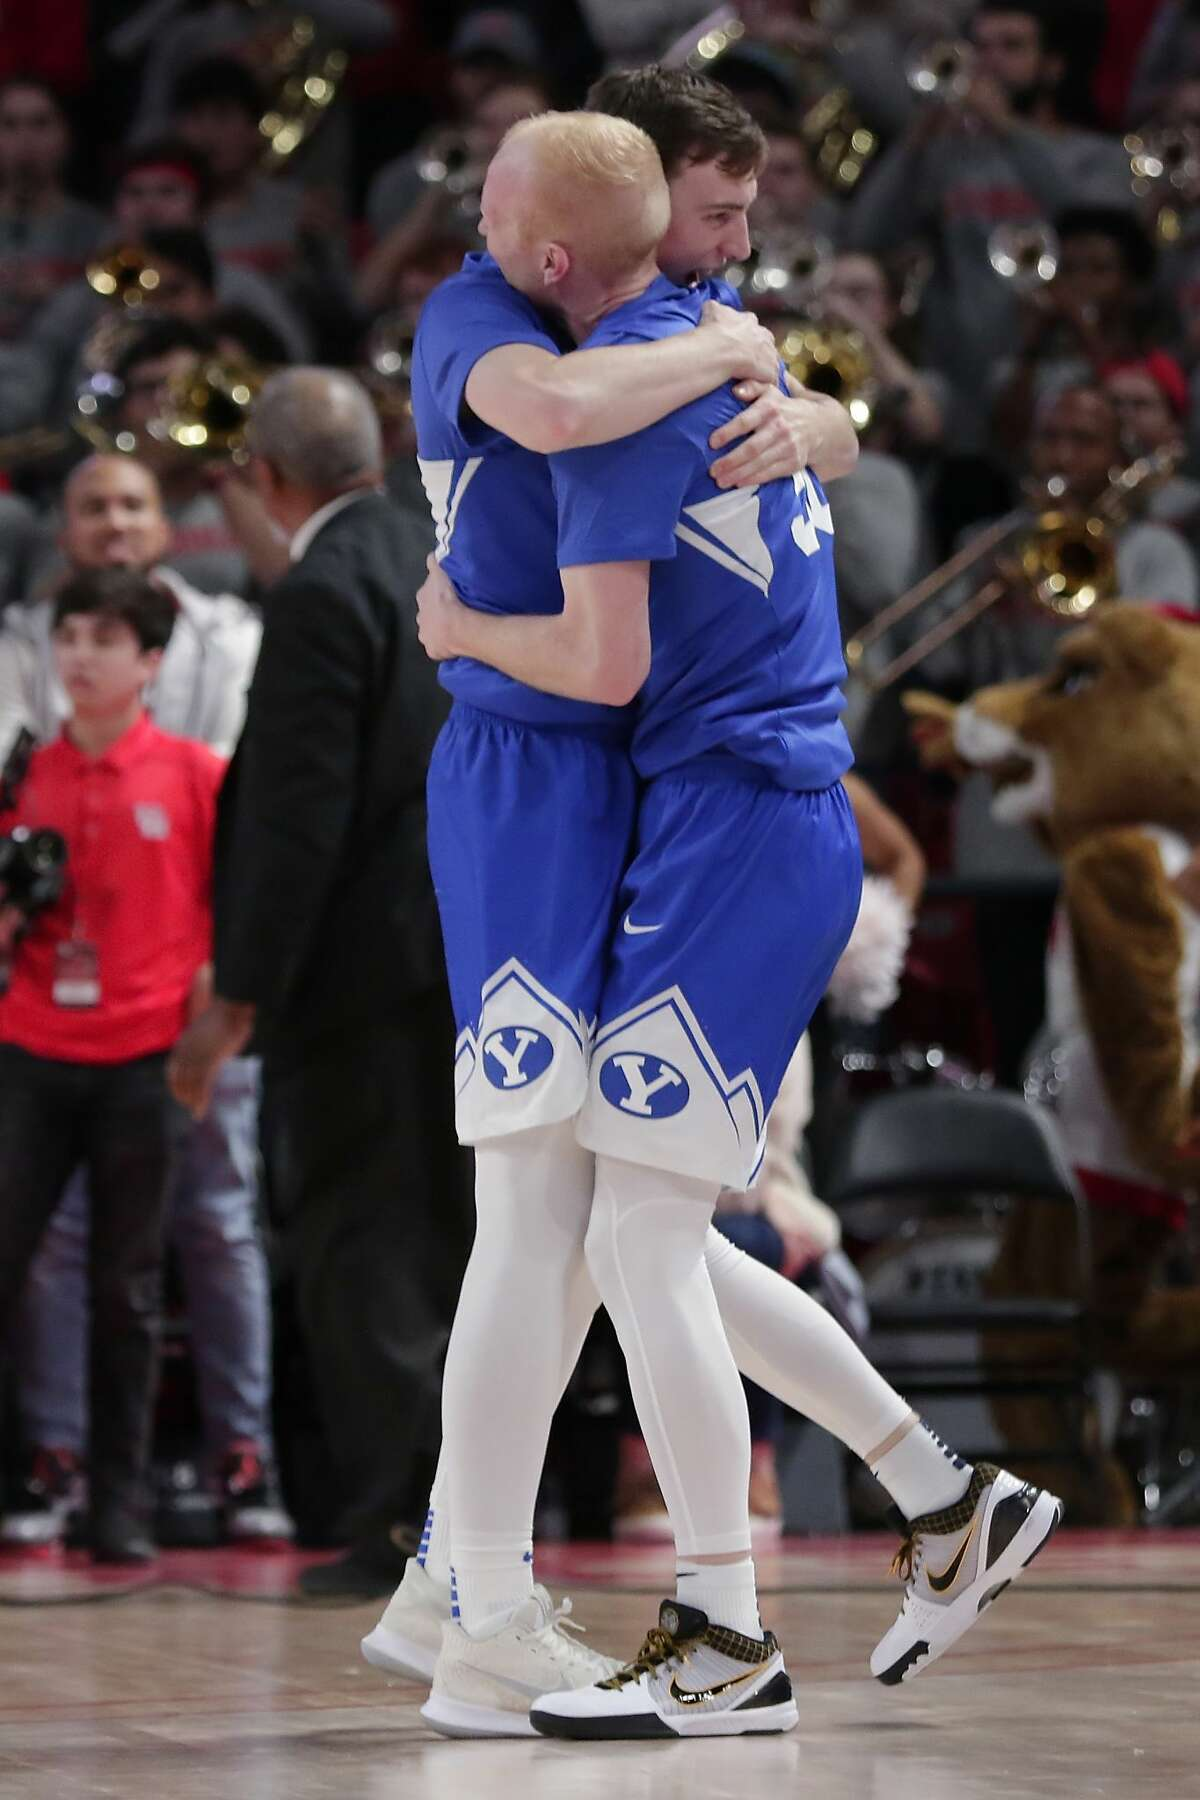 Brigham Young guard Evan Troy, left, hugs Brigham Young guard TJ Haws, right, after Haws' last second basket to win by one point after their NCAA basketball game against Houston Friday, Nov. 15, 2019 in Houston, TX.